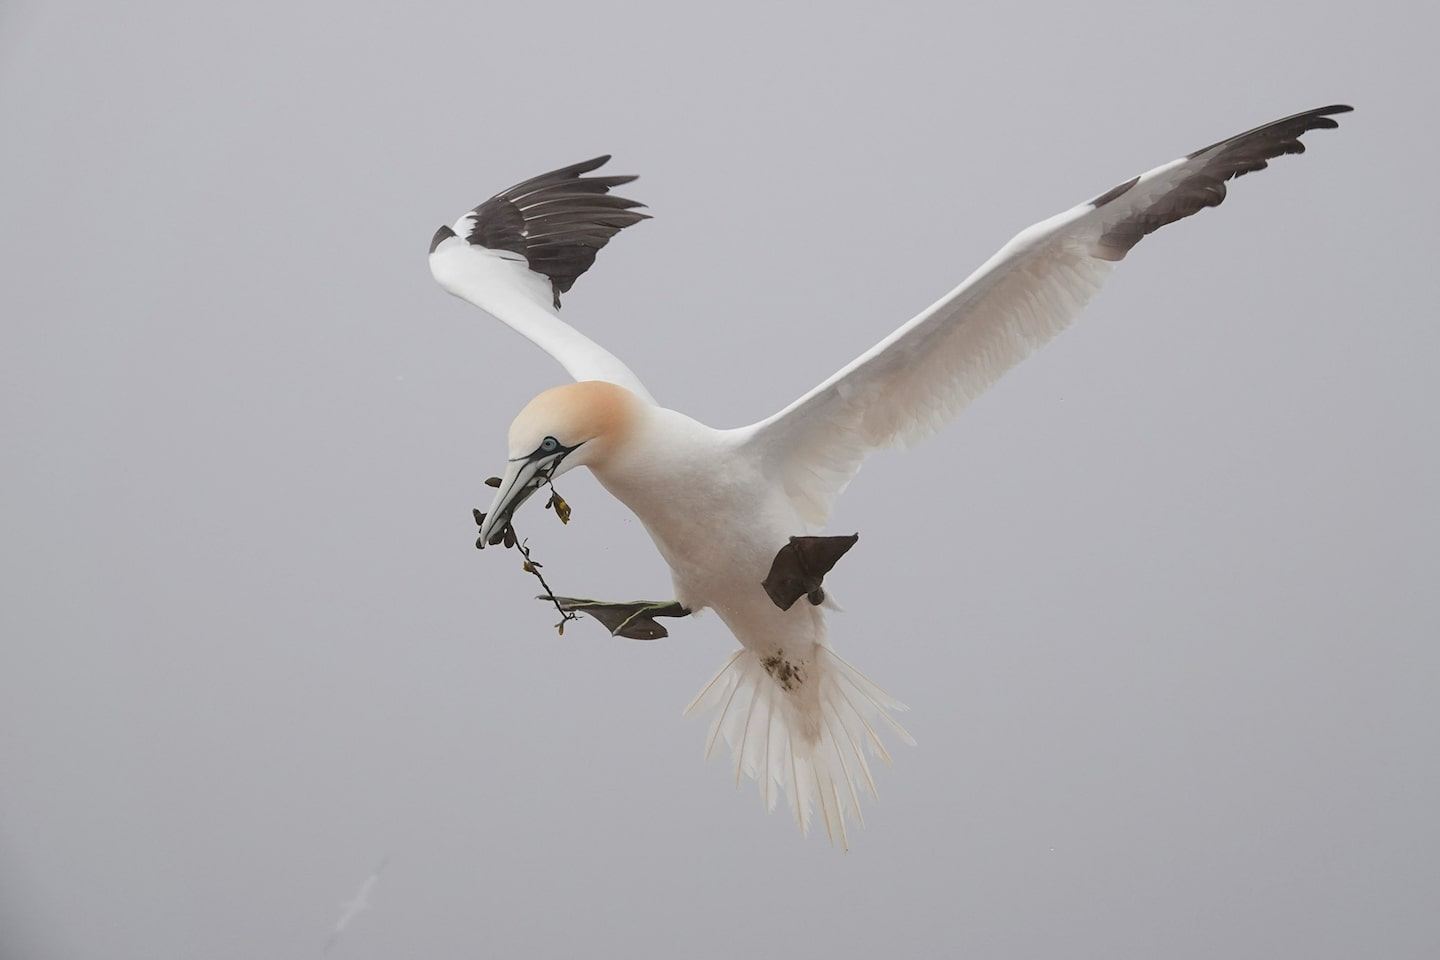 gustav kiburg sony rx10IV northern gannet in norway